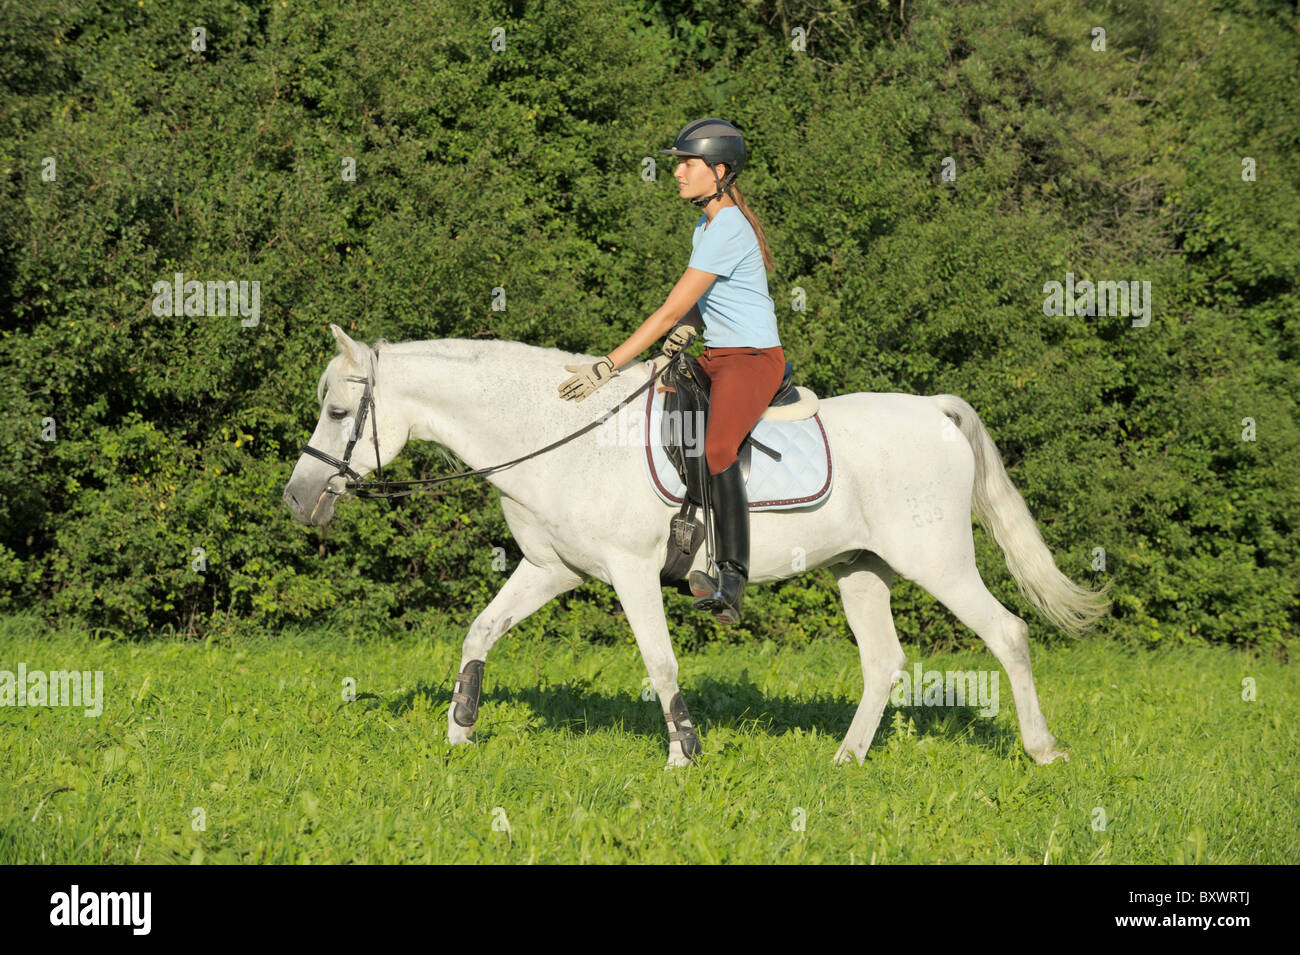 Young rider on back of a German pony walking with long reins - Stock Image